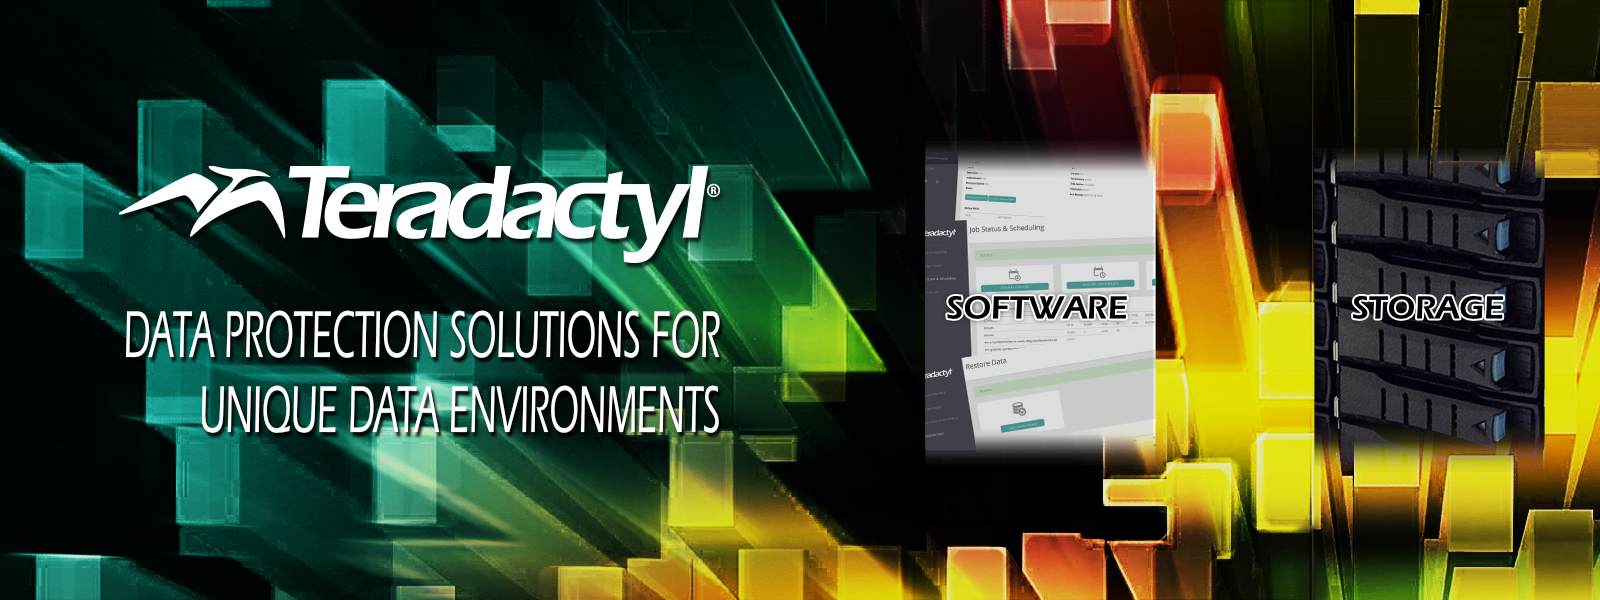 Teradactyl backup solutions include software, storage, and appliances